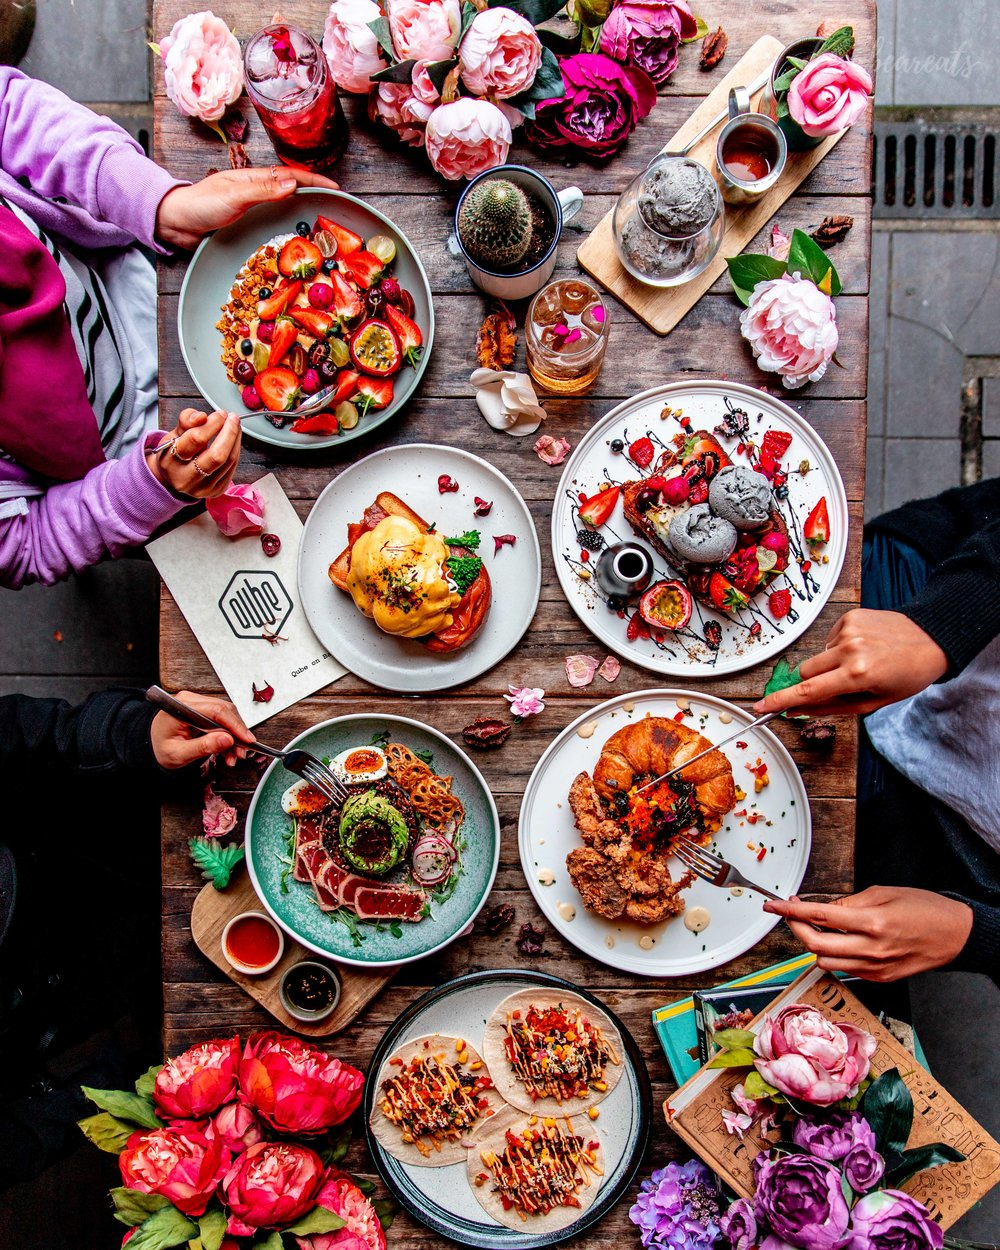 PROFESSIONAL PHOTOS - Including a beautiful flatlay* showcasing your best food for your page.